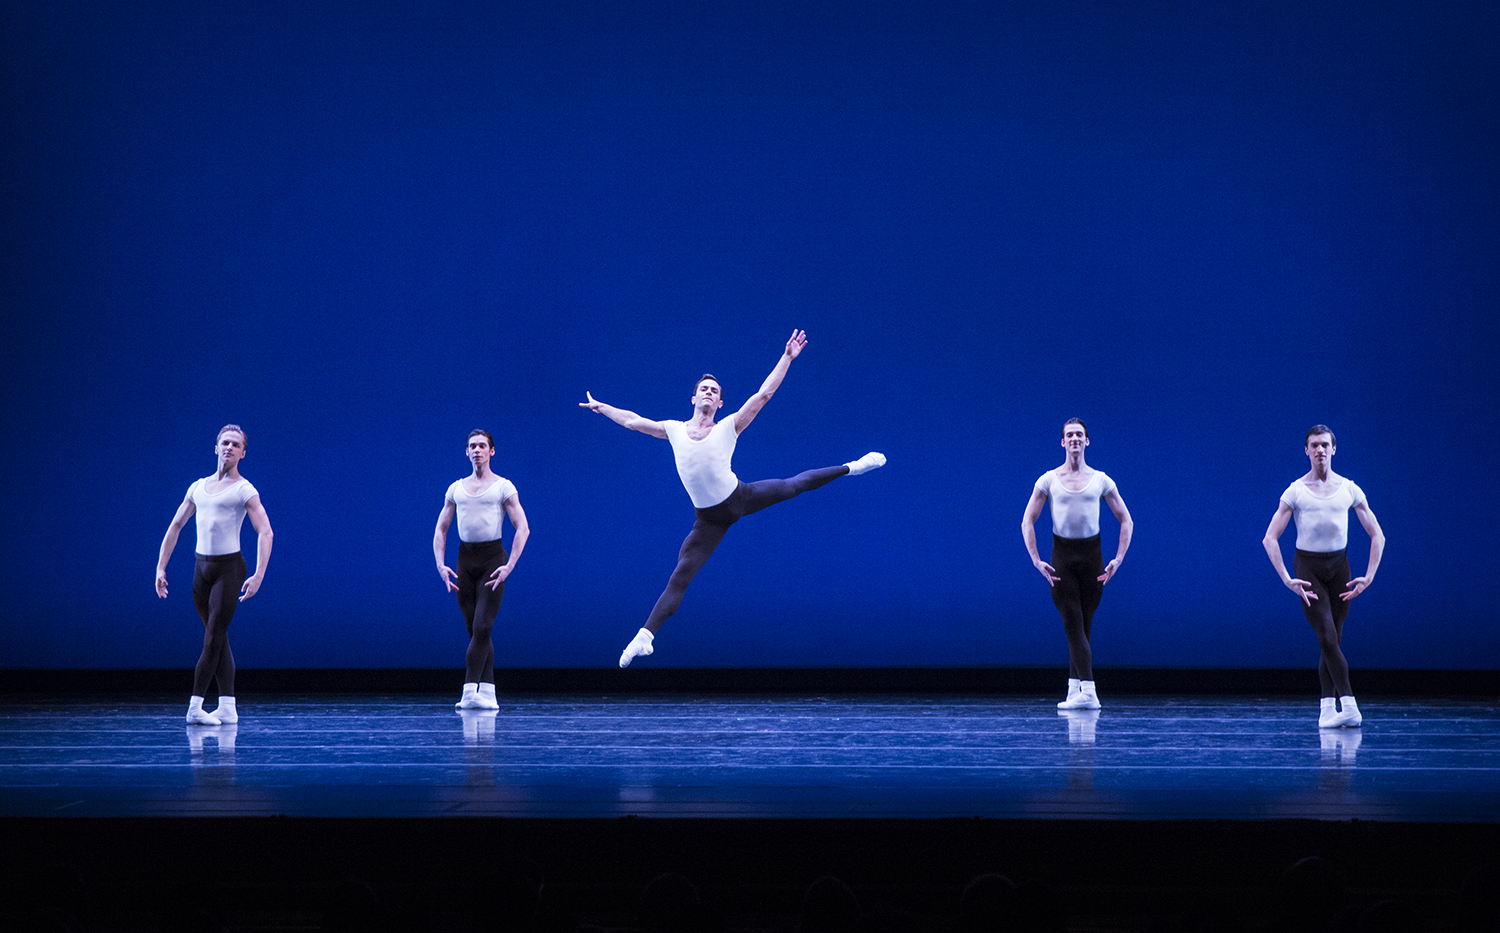 """Jerome Tisserand (jump), Dylan Wald, Guillaume Basso, Miles Pertl and Steven Loch (l-r) in Balanchine's """"Stravinsky Violin Concerto."""" Photo by Lindsay Thomas."""